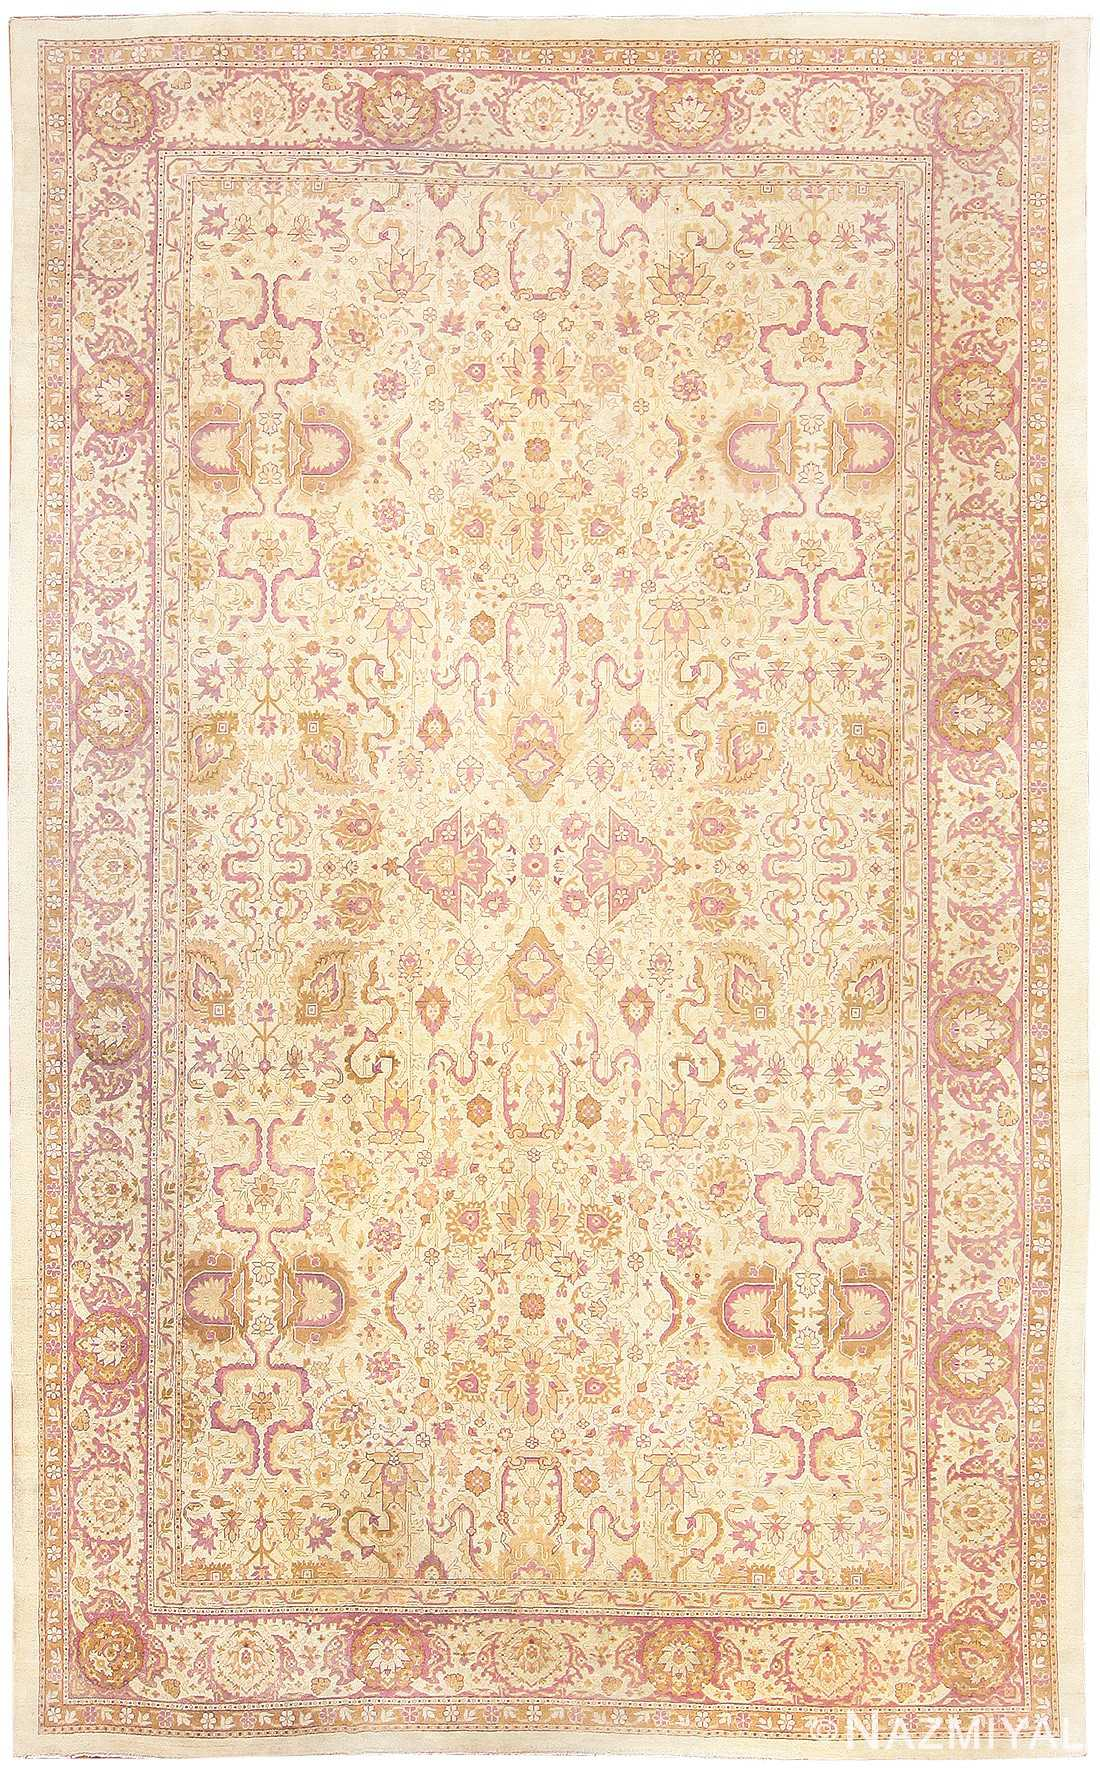 Antique Indian Amritsar Carpet 48002 Nazmiyal